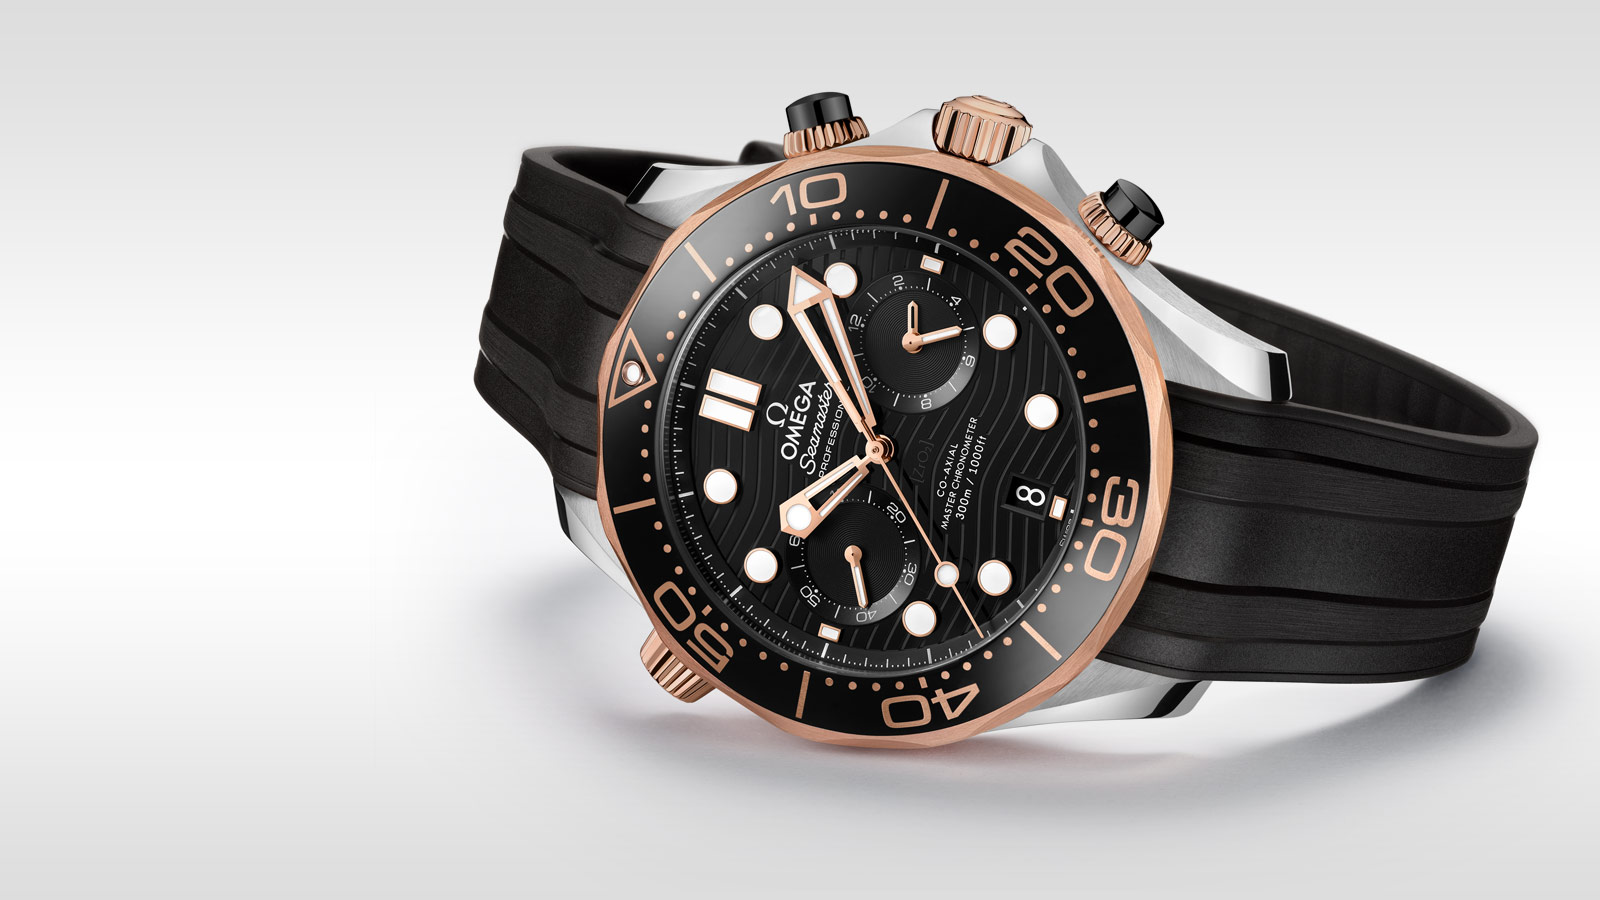 Seamaster Diver 300 M Diver 300M Omega Co‑Axial Master Chronometer Chronograph 44 mm - 210.22.44.51.01.001 - View 2